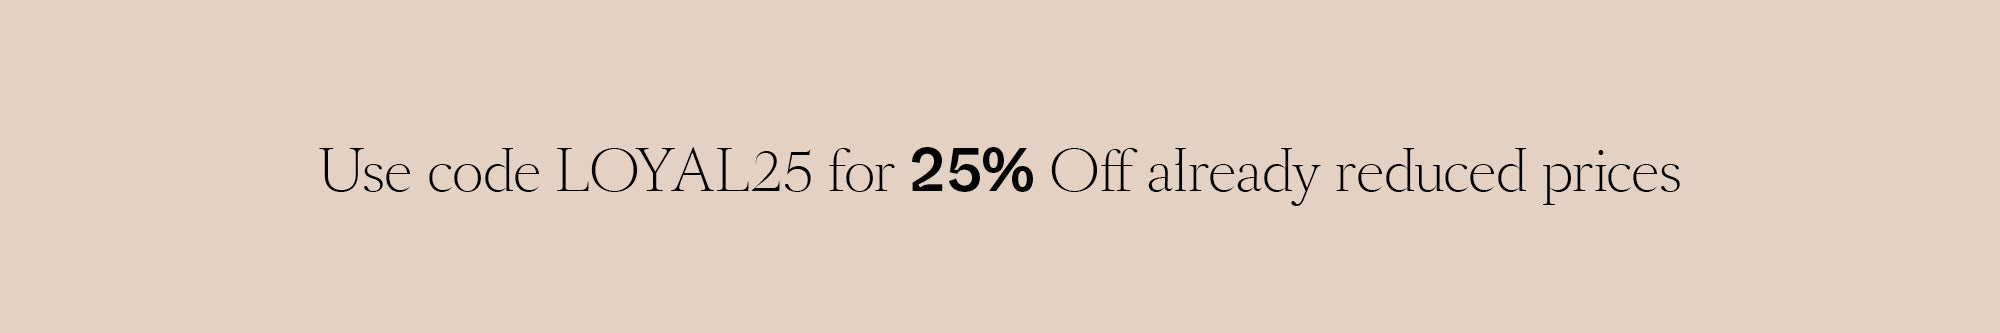 Use code LOYAL25 for 25% Off already reduced prices